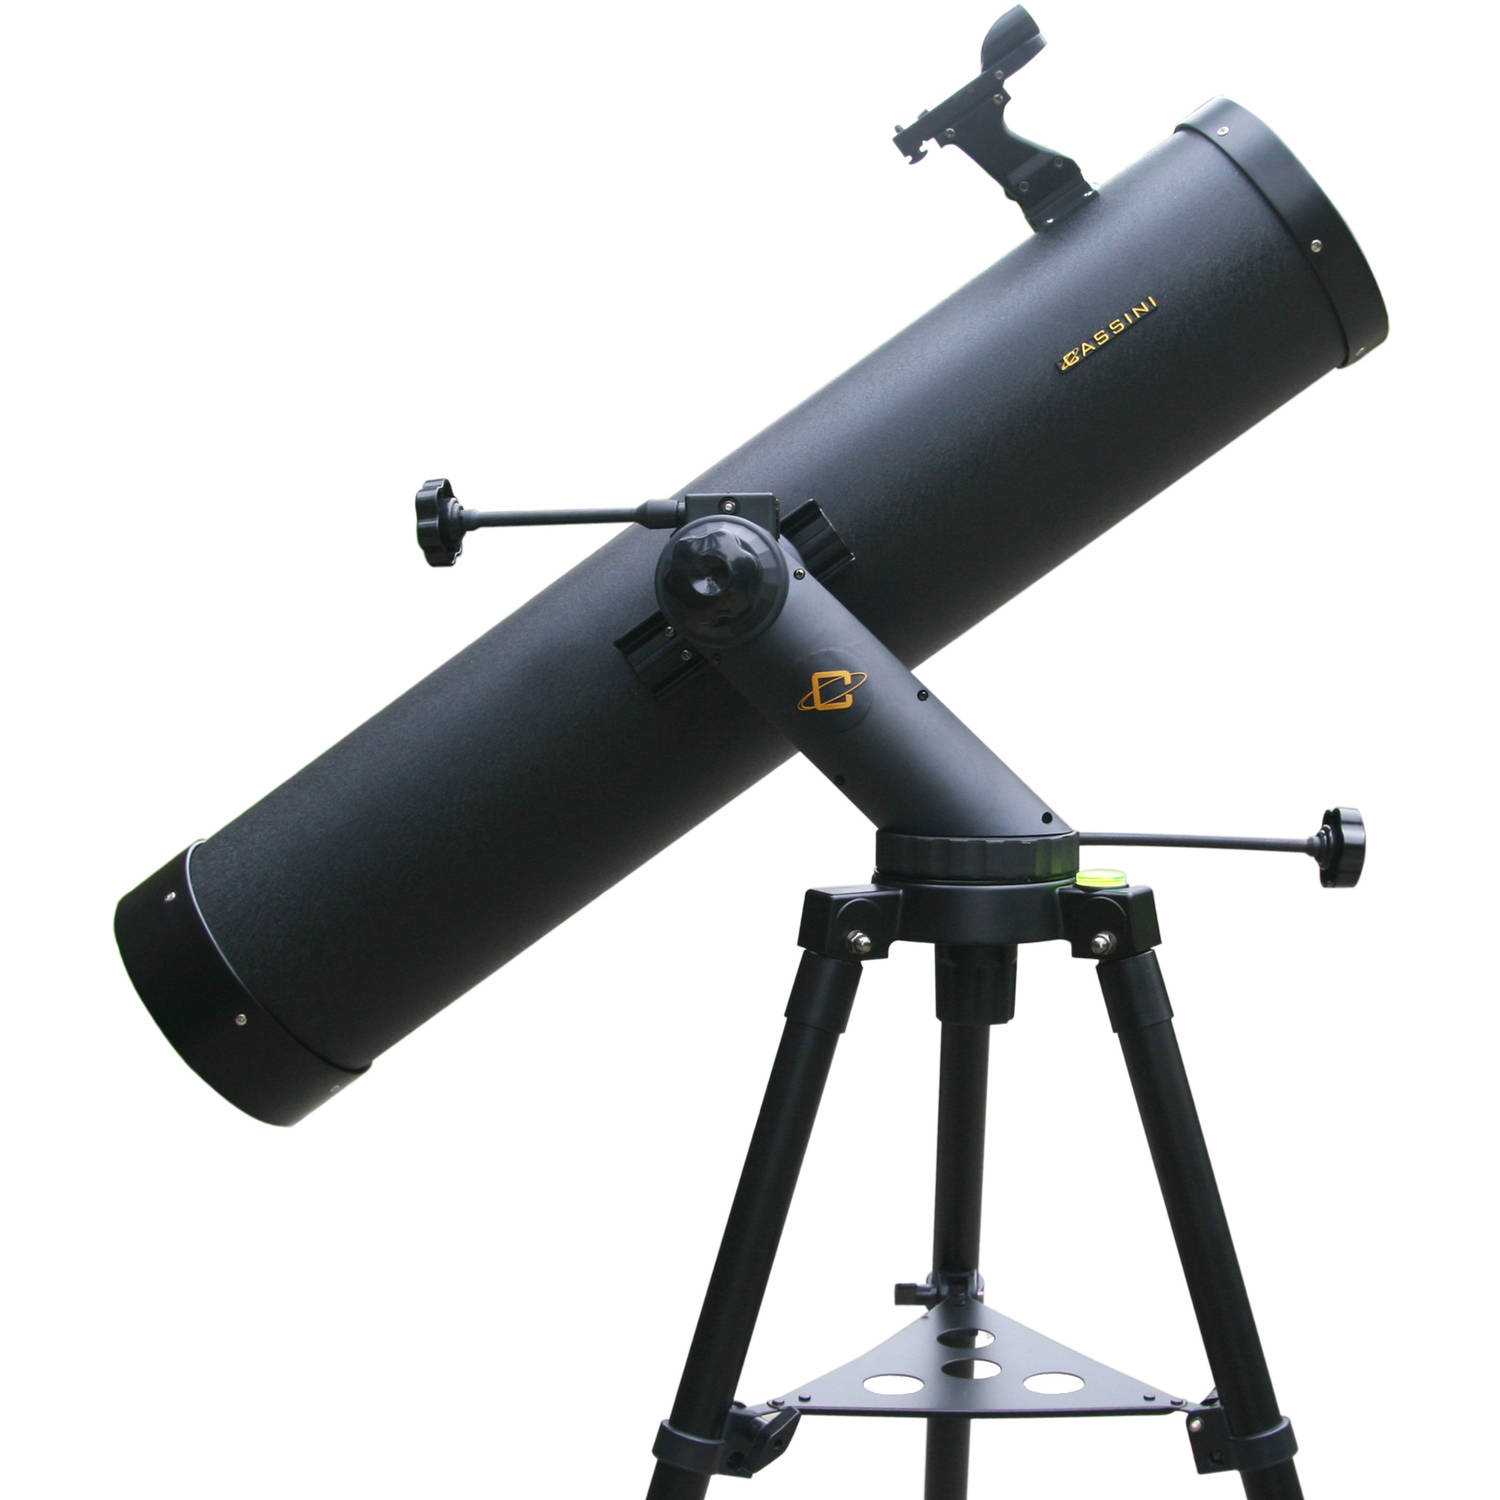 Cassini 900mm x 135mm Tracker Series Astronomical Reflector Telescope with Tripod -